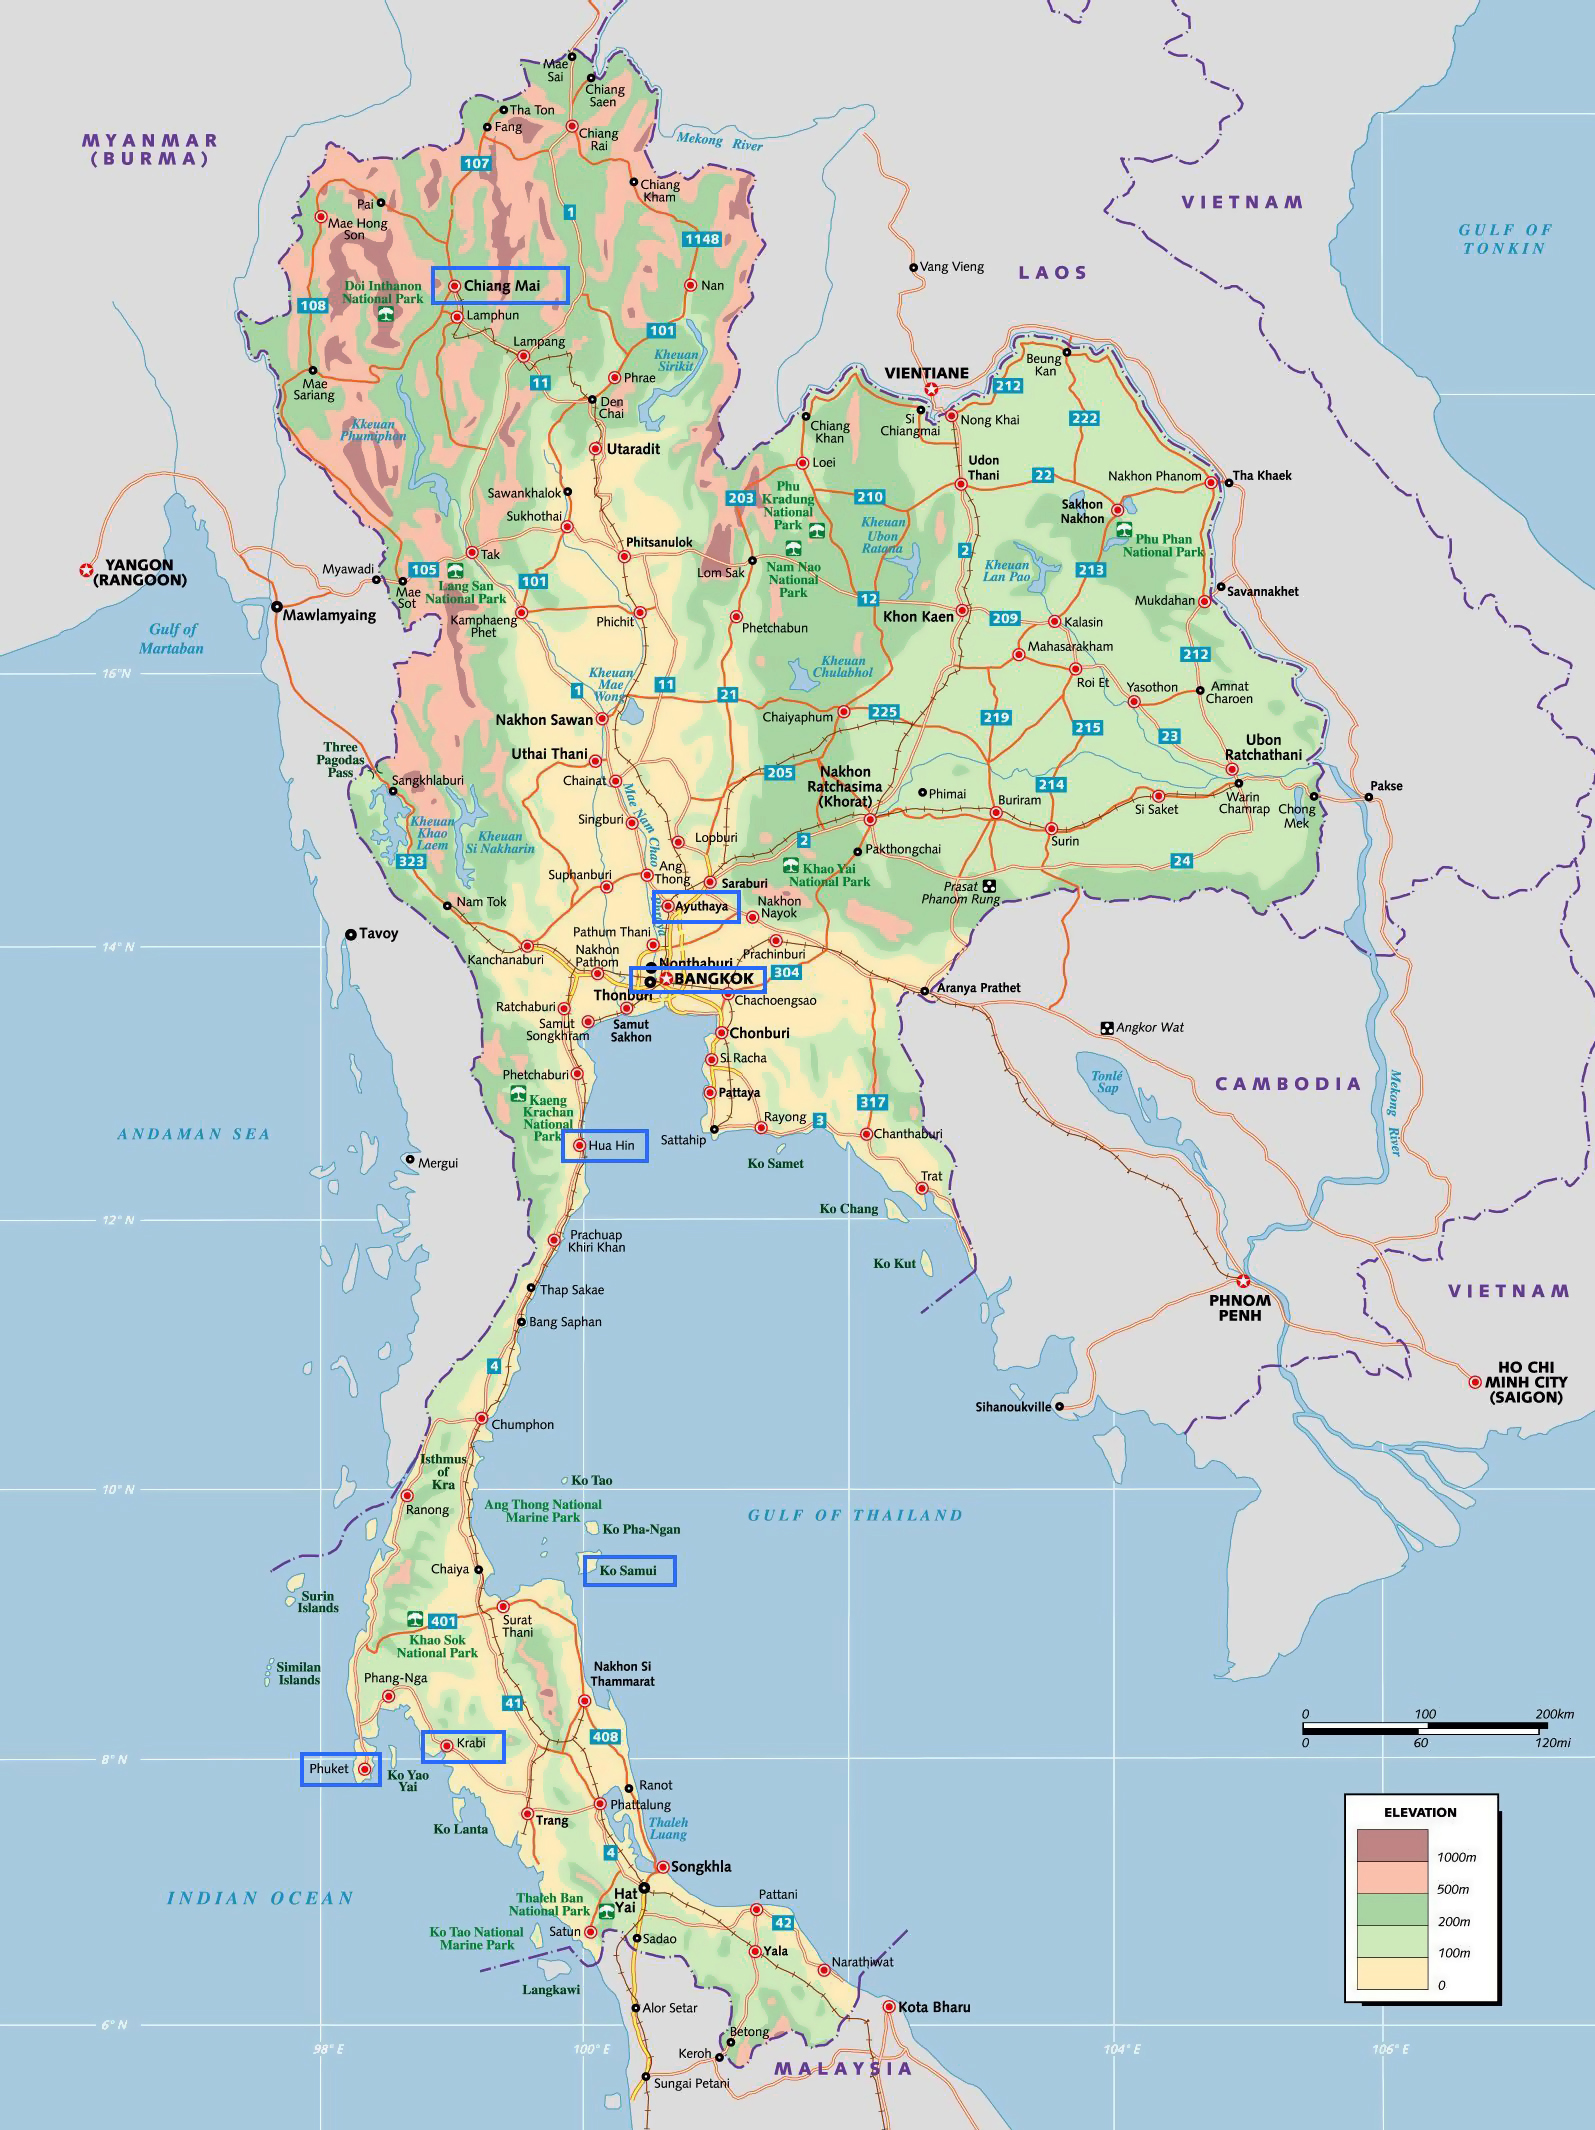 Thailand Topographic Map.Large Elevation Map Of Thailand With Other Marks Thailand Asia